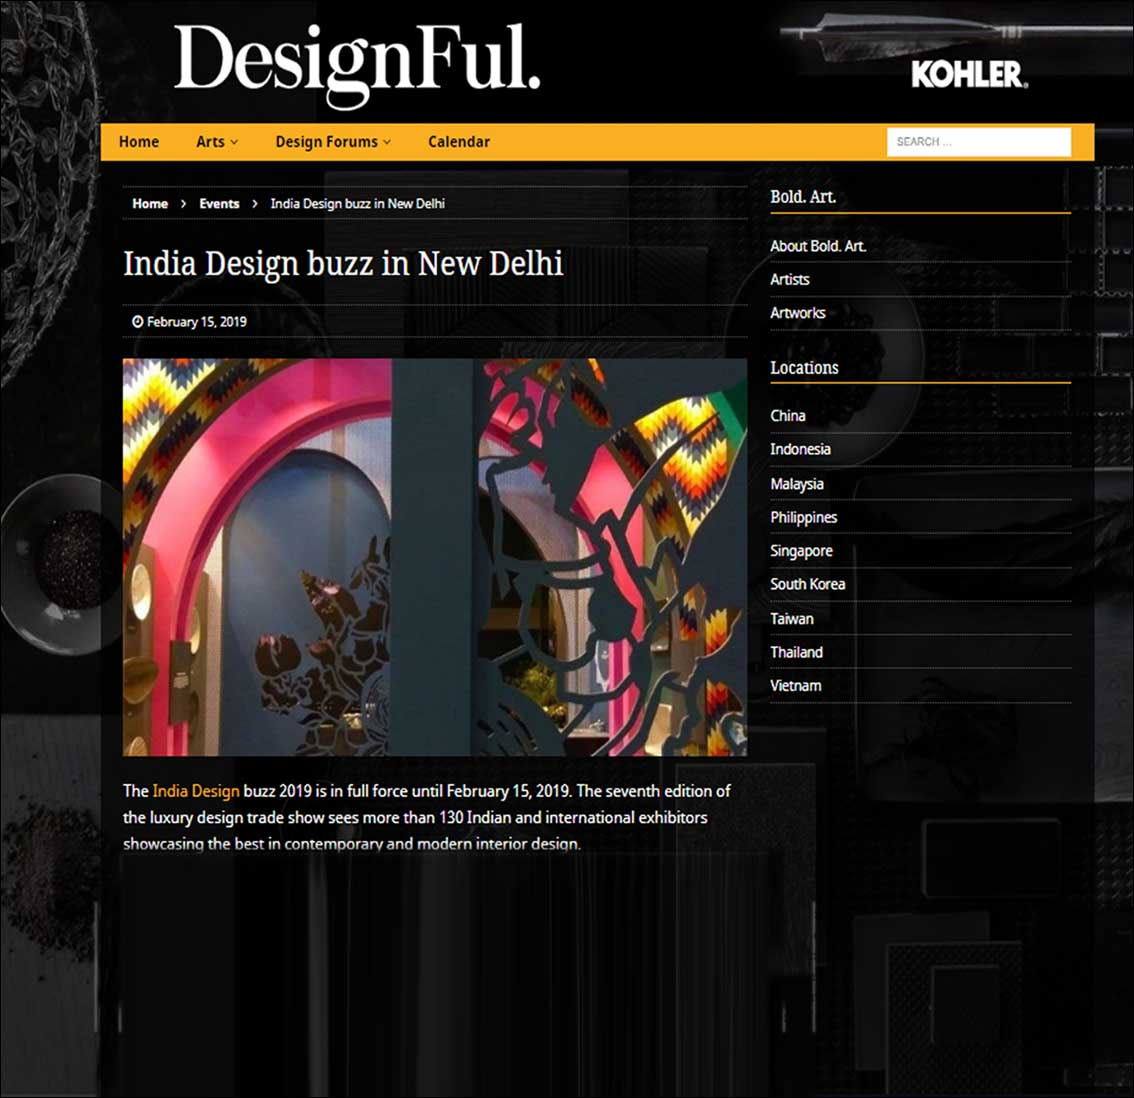 India Design Buzz in New Delhi, Kohler Design - February 201